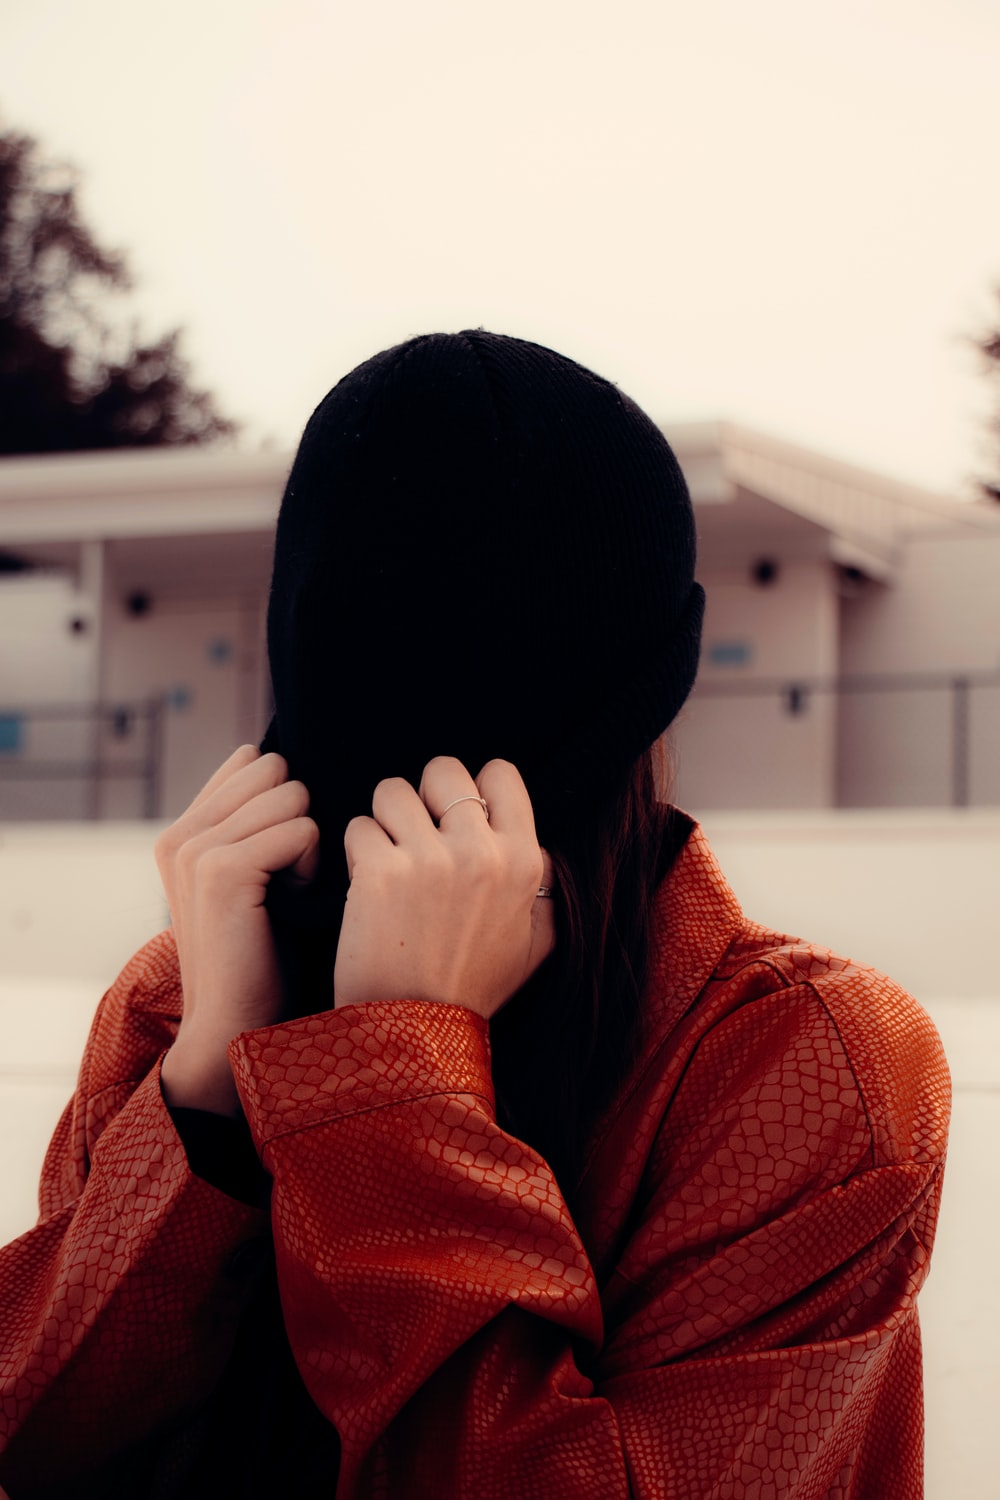 woman in red knit sweater covering face with black knit cap